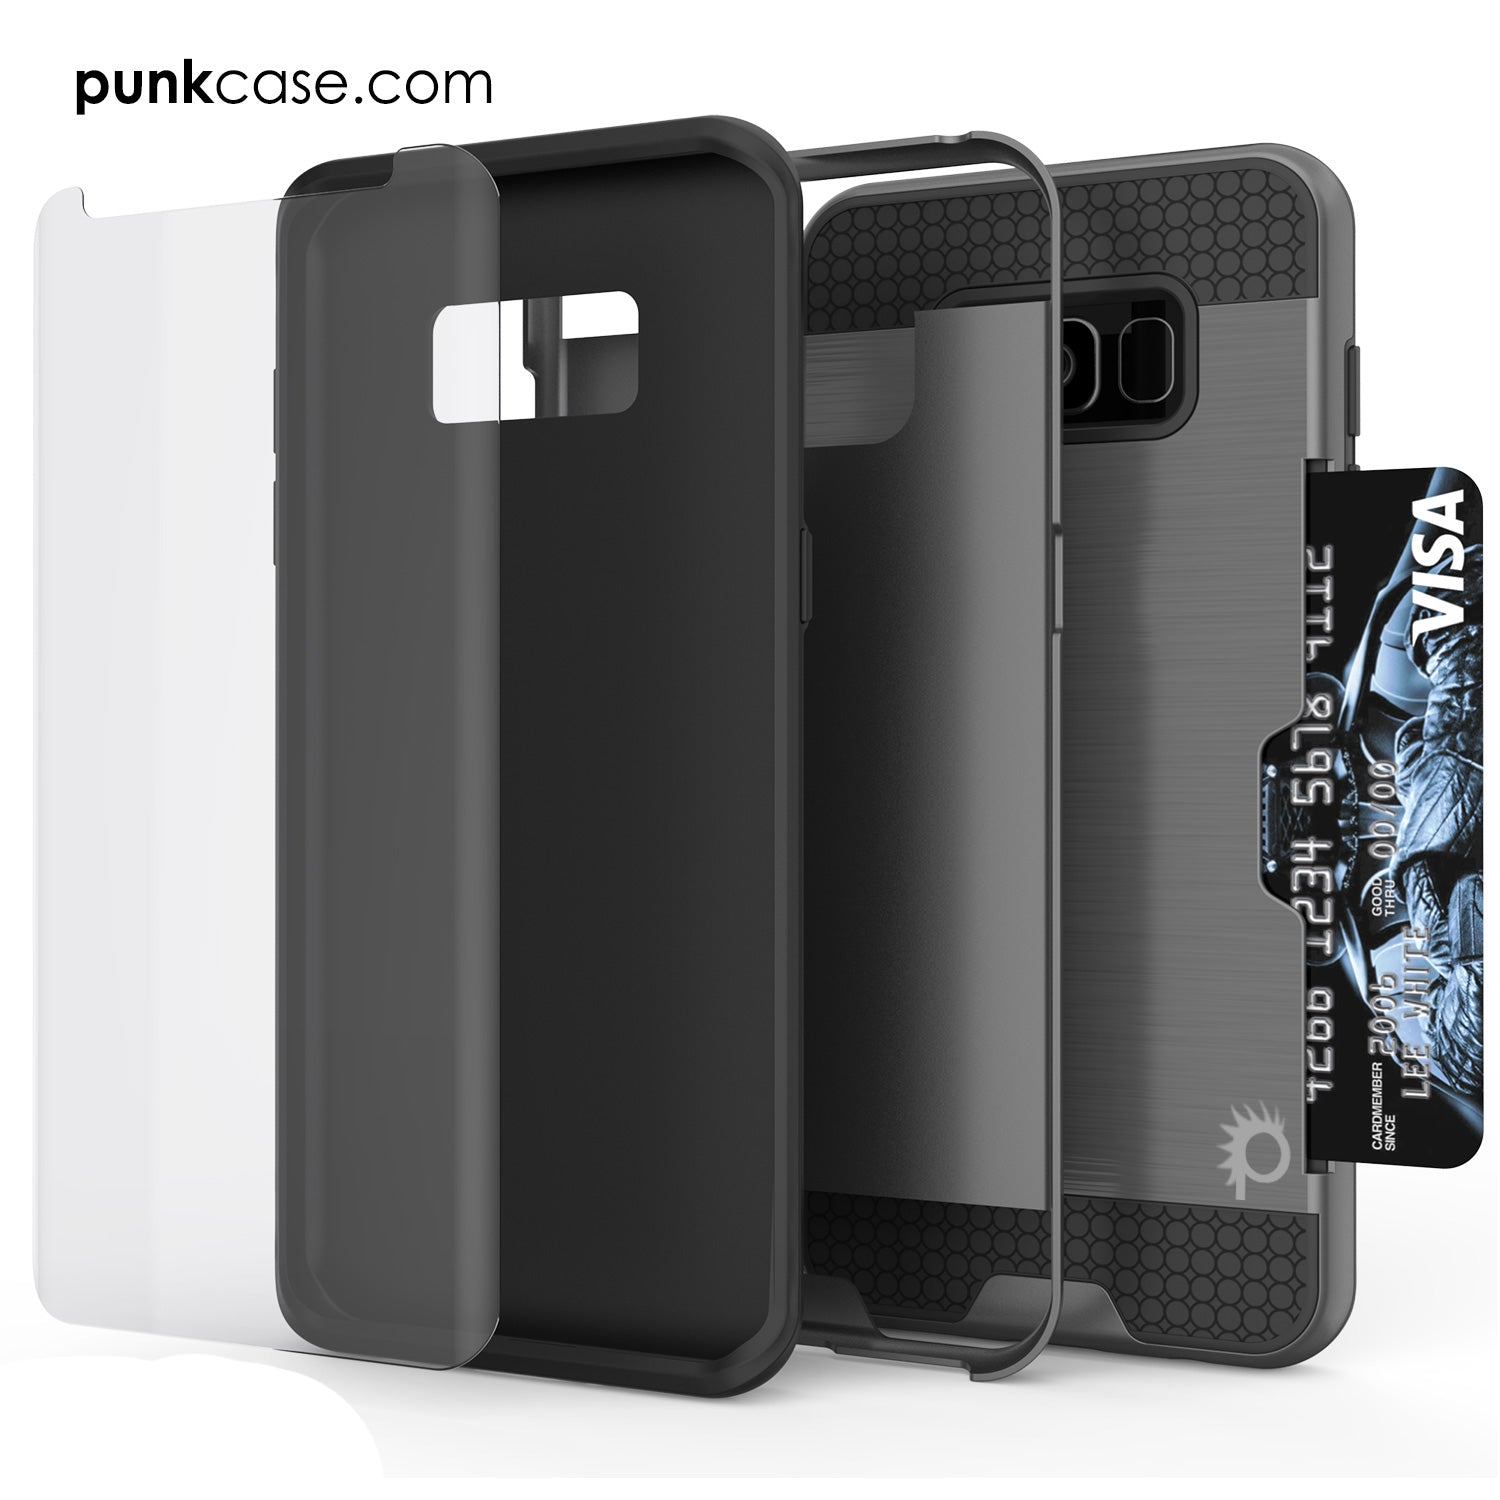 Galaxy S8 Case, PUNKcase [SLOT Series] [Slim Fit] Dual-Layer Armor Cover w/Integrated Anti-Shock System, Credit Card Slot [Grey]